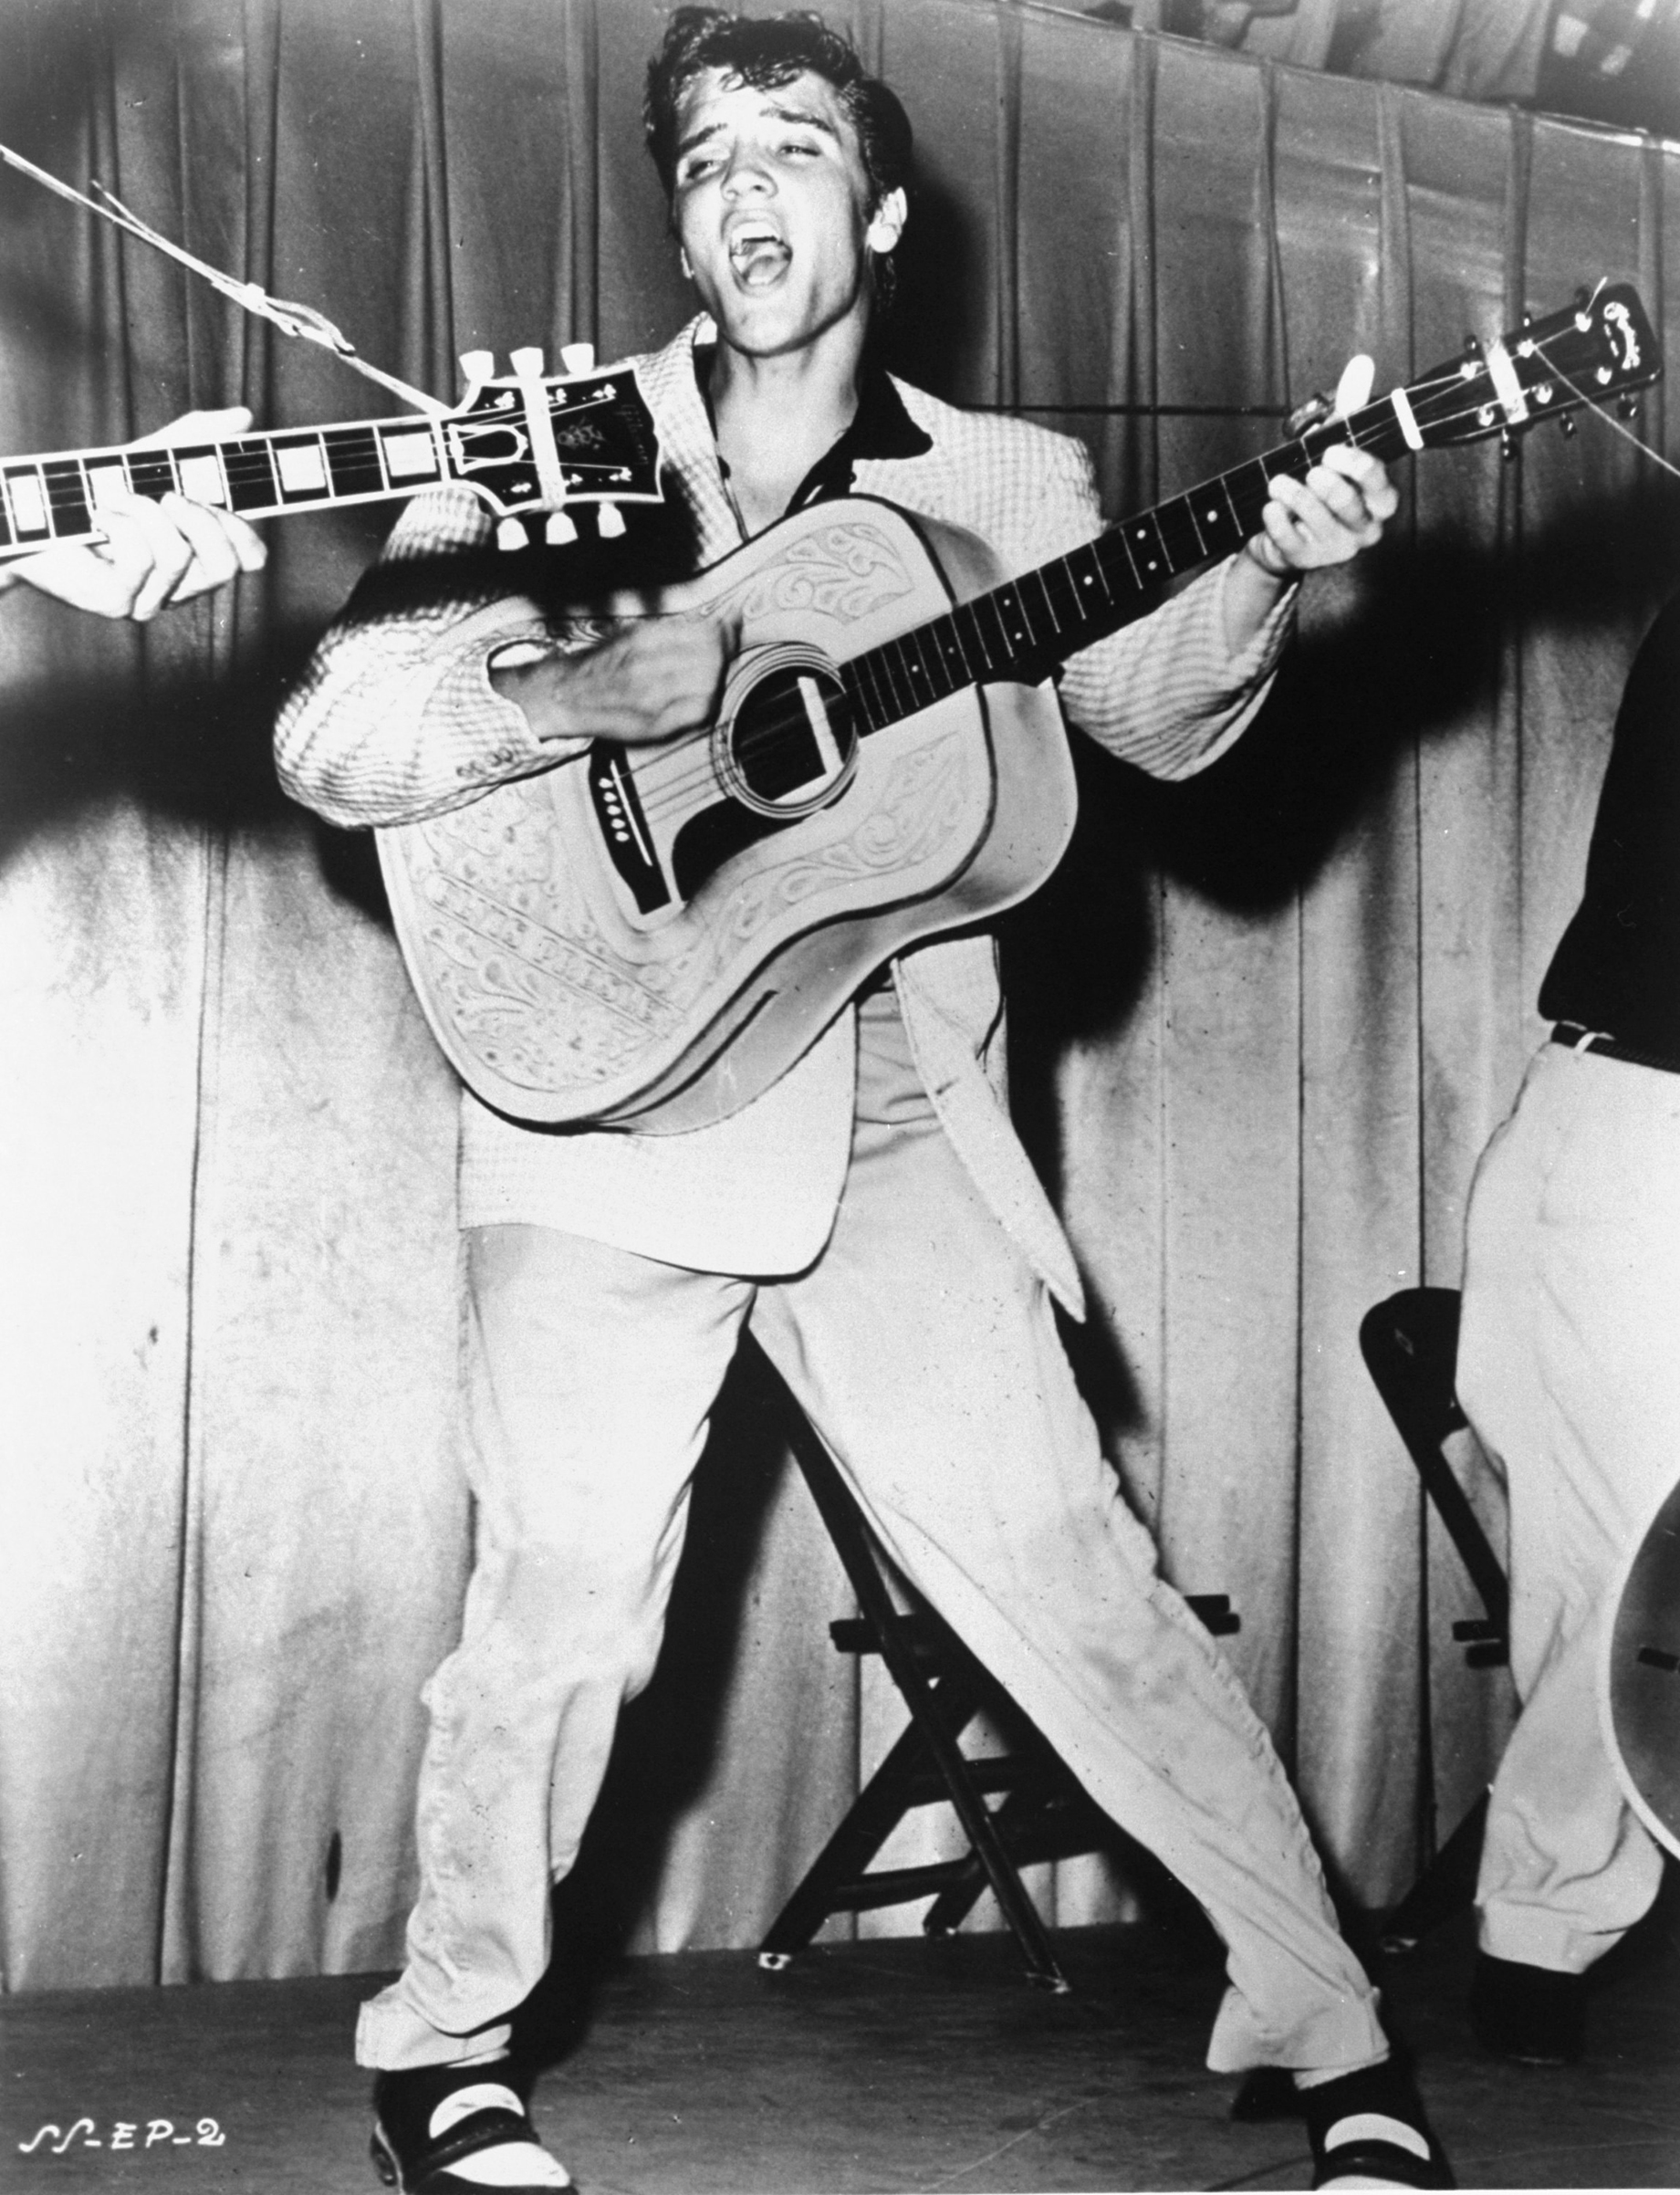 Elvis  performs on the stage in Tampa, Fla, 1955.